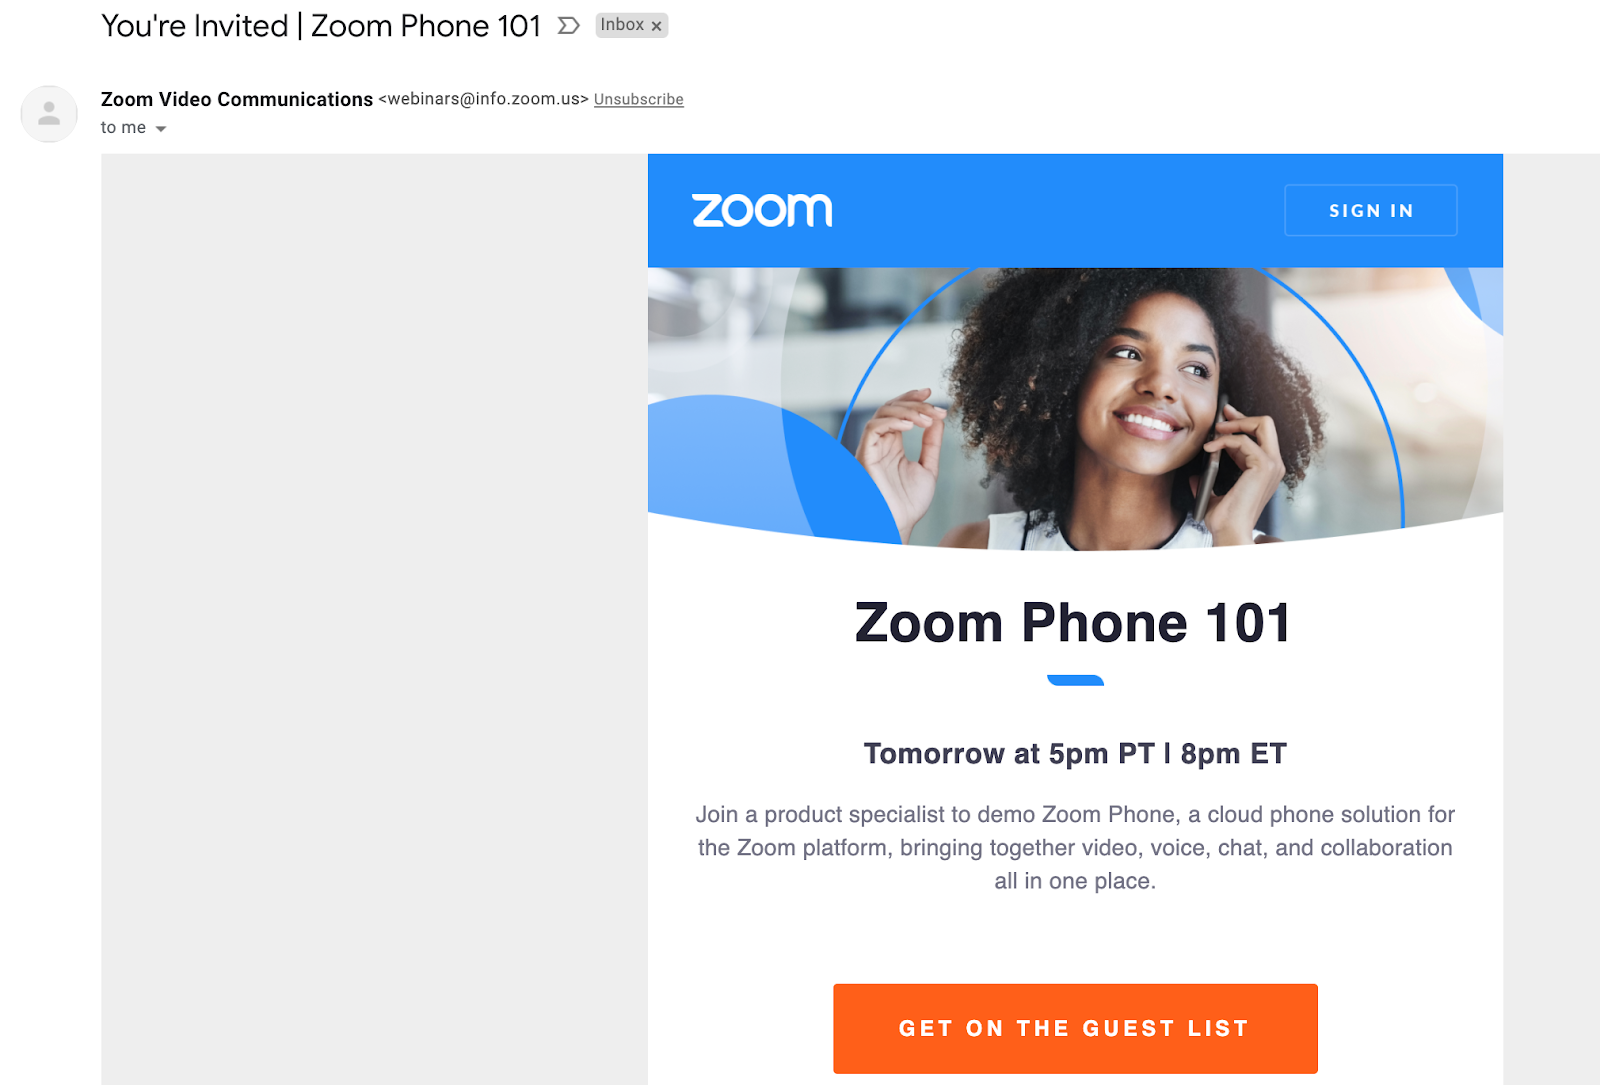 Email marketing campaign example by Zoom